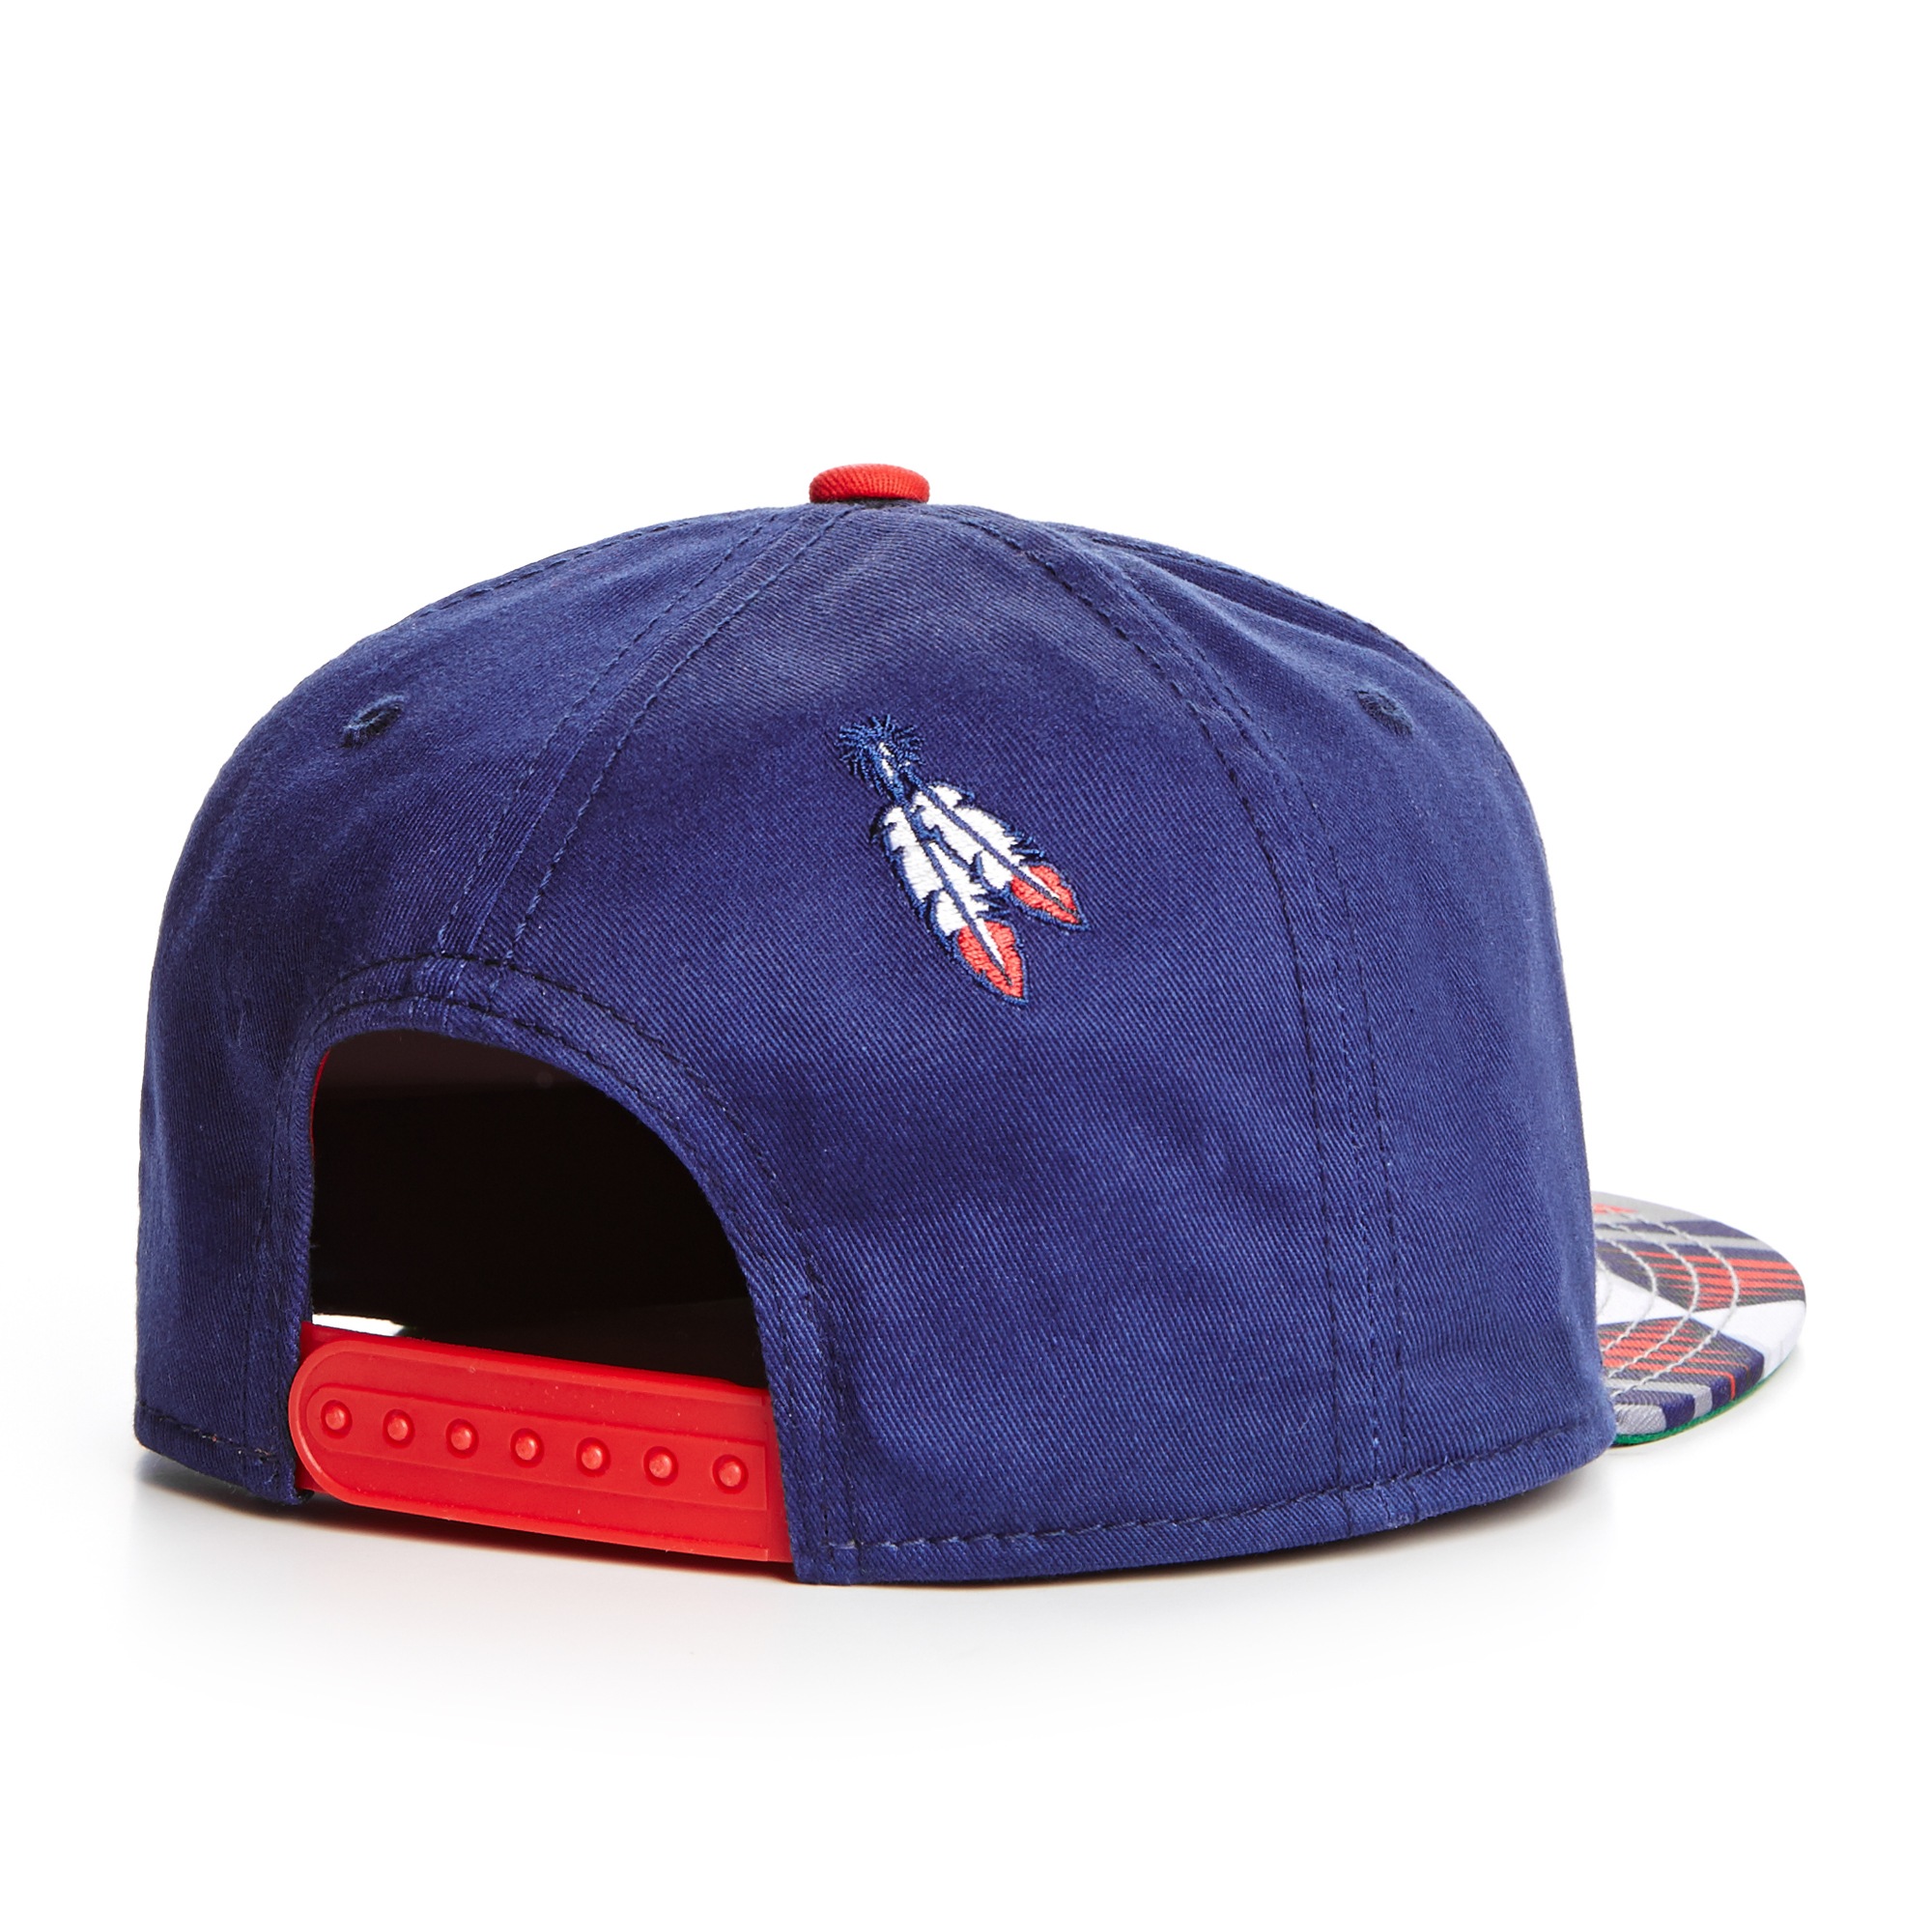 chief-cap-deep-navy-red-03